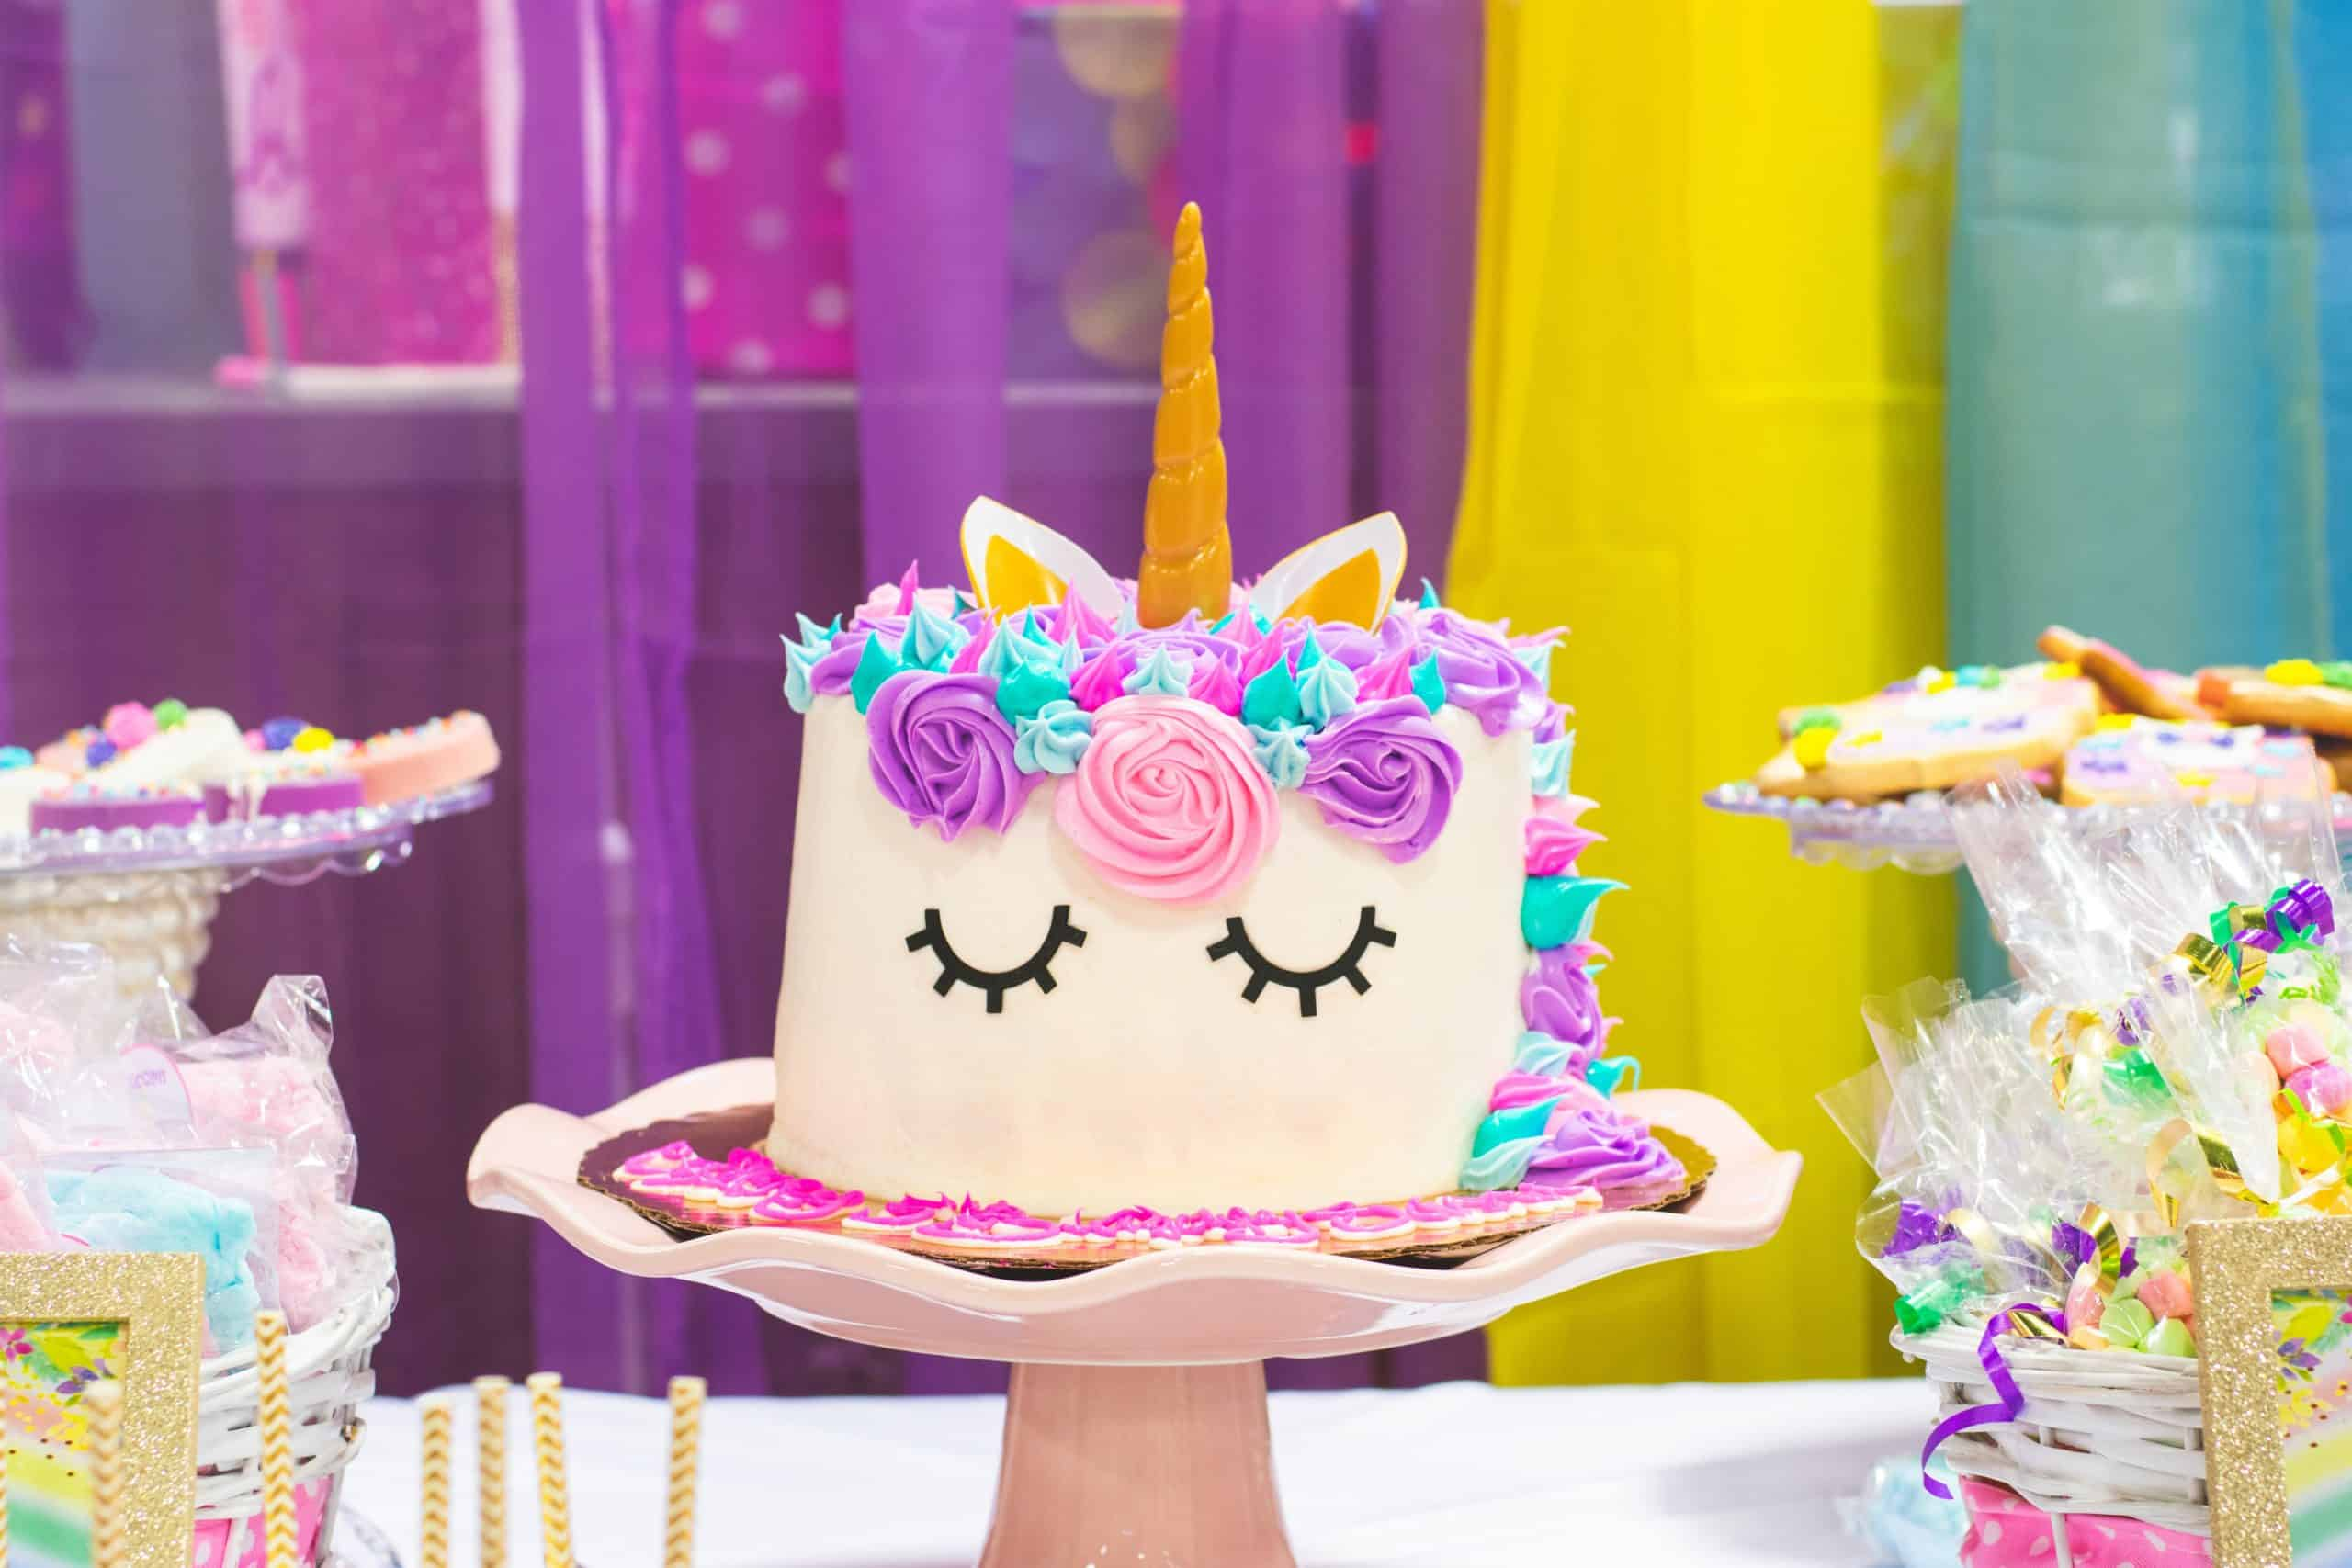 Getting The Right Cake Decorating Kits